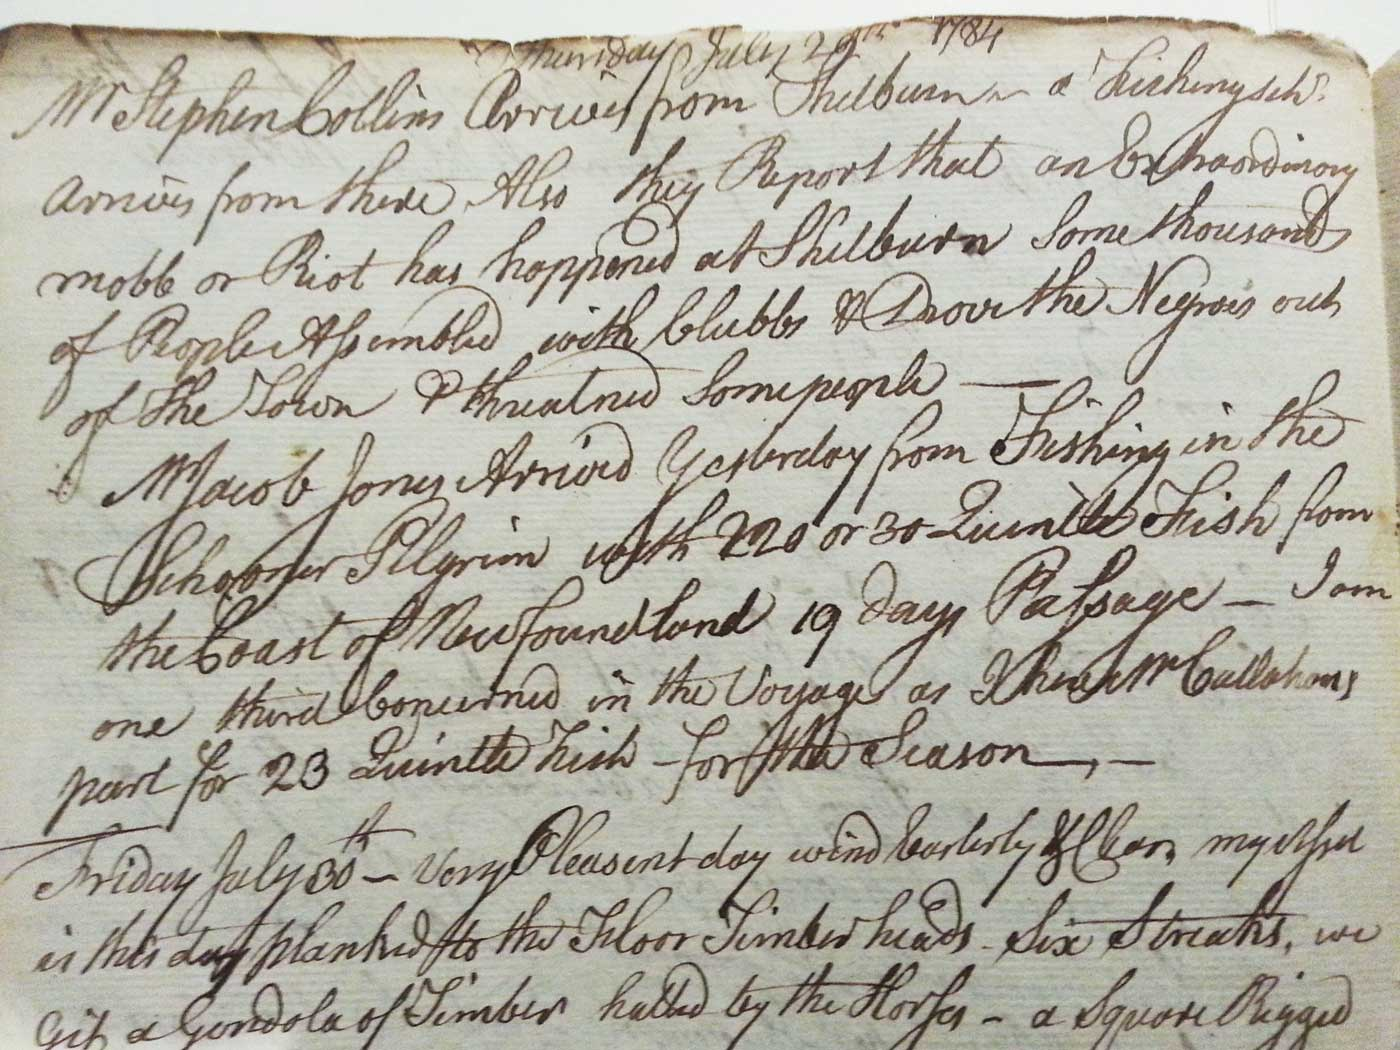 Simeon Perkins Diary Handwritten Page Entry for July 29, 1784 ShelburneRiot